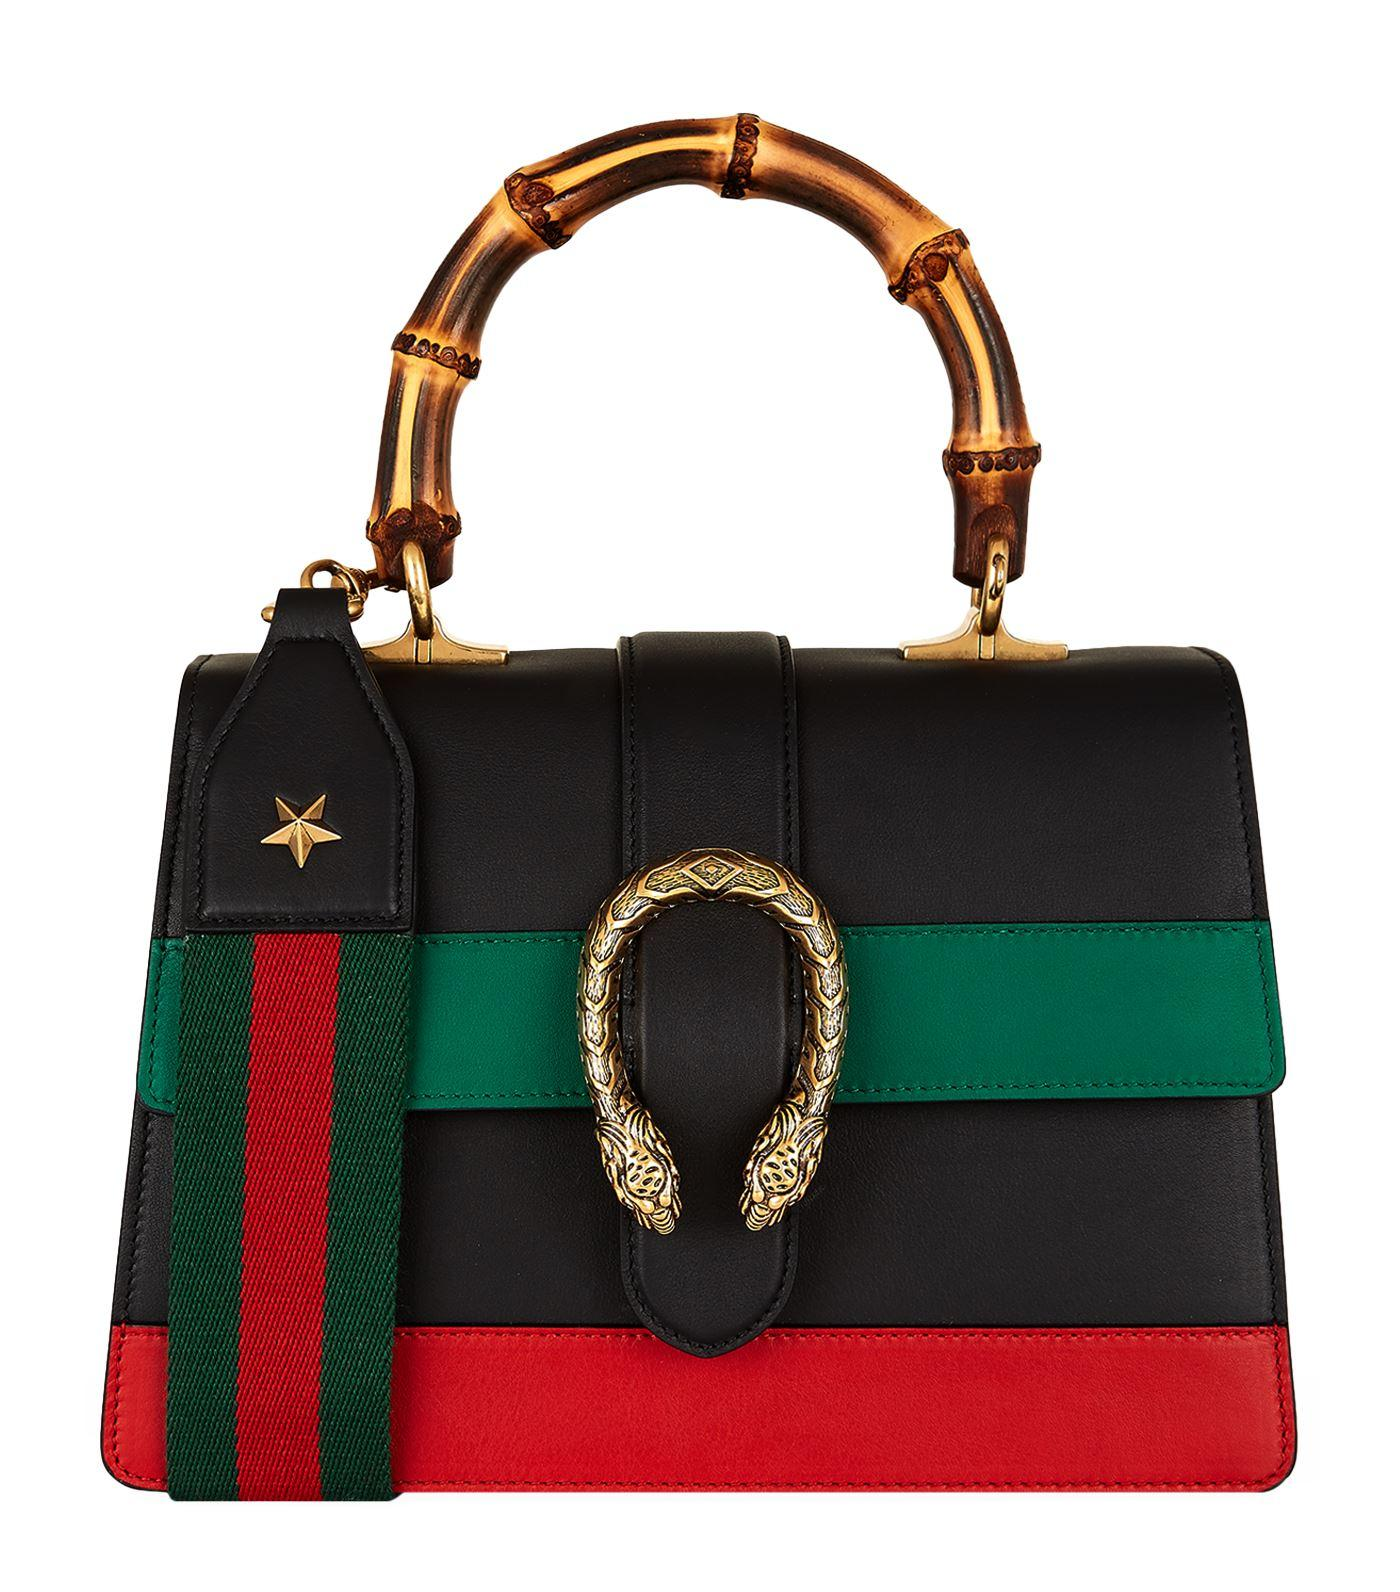 6ad7a6163444 Gucci Bag With Bamboo Handles | Stanford Center for Opportunity ...